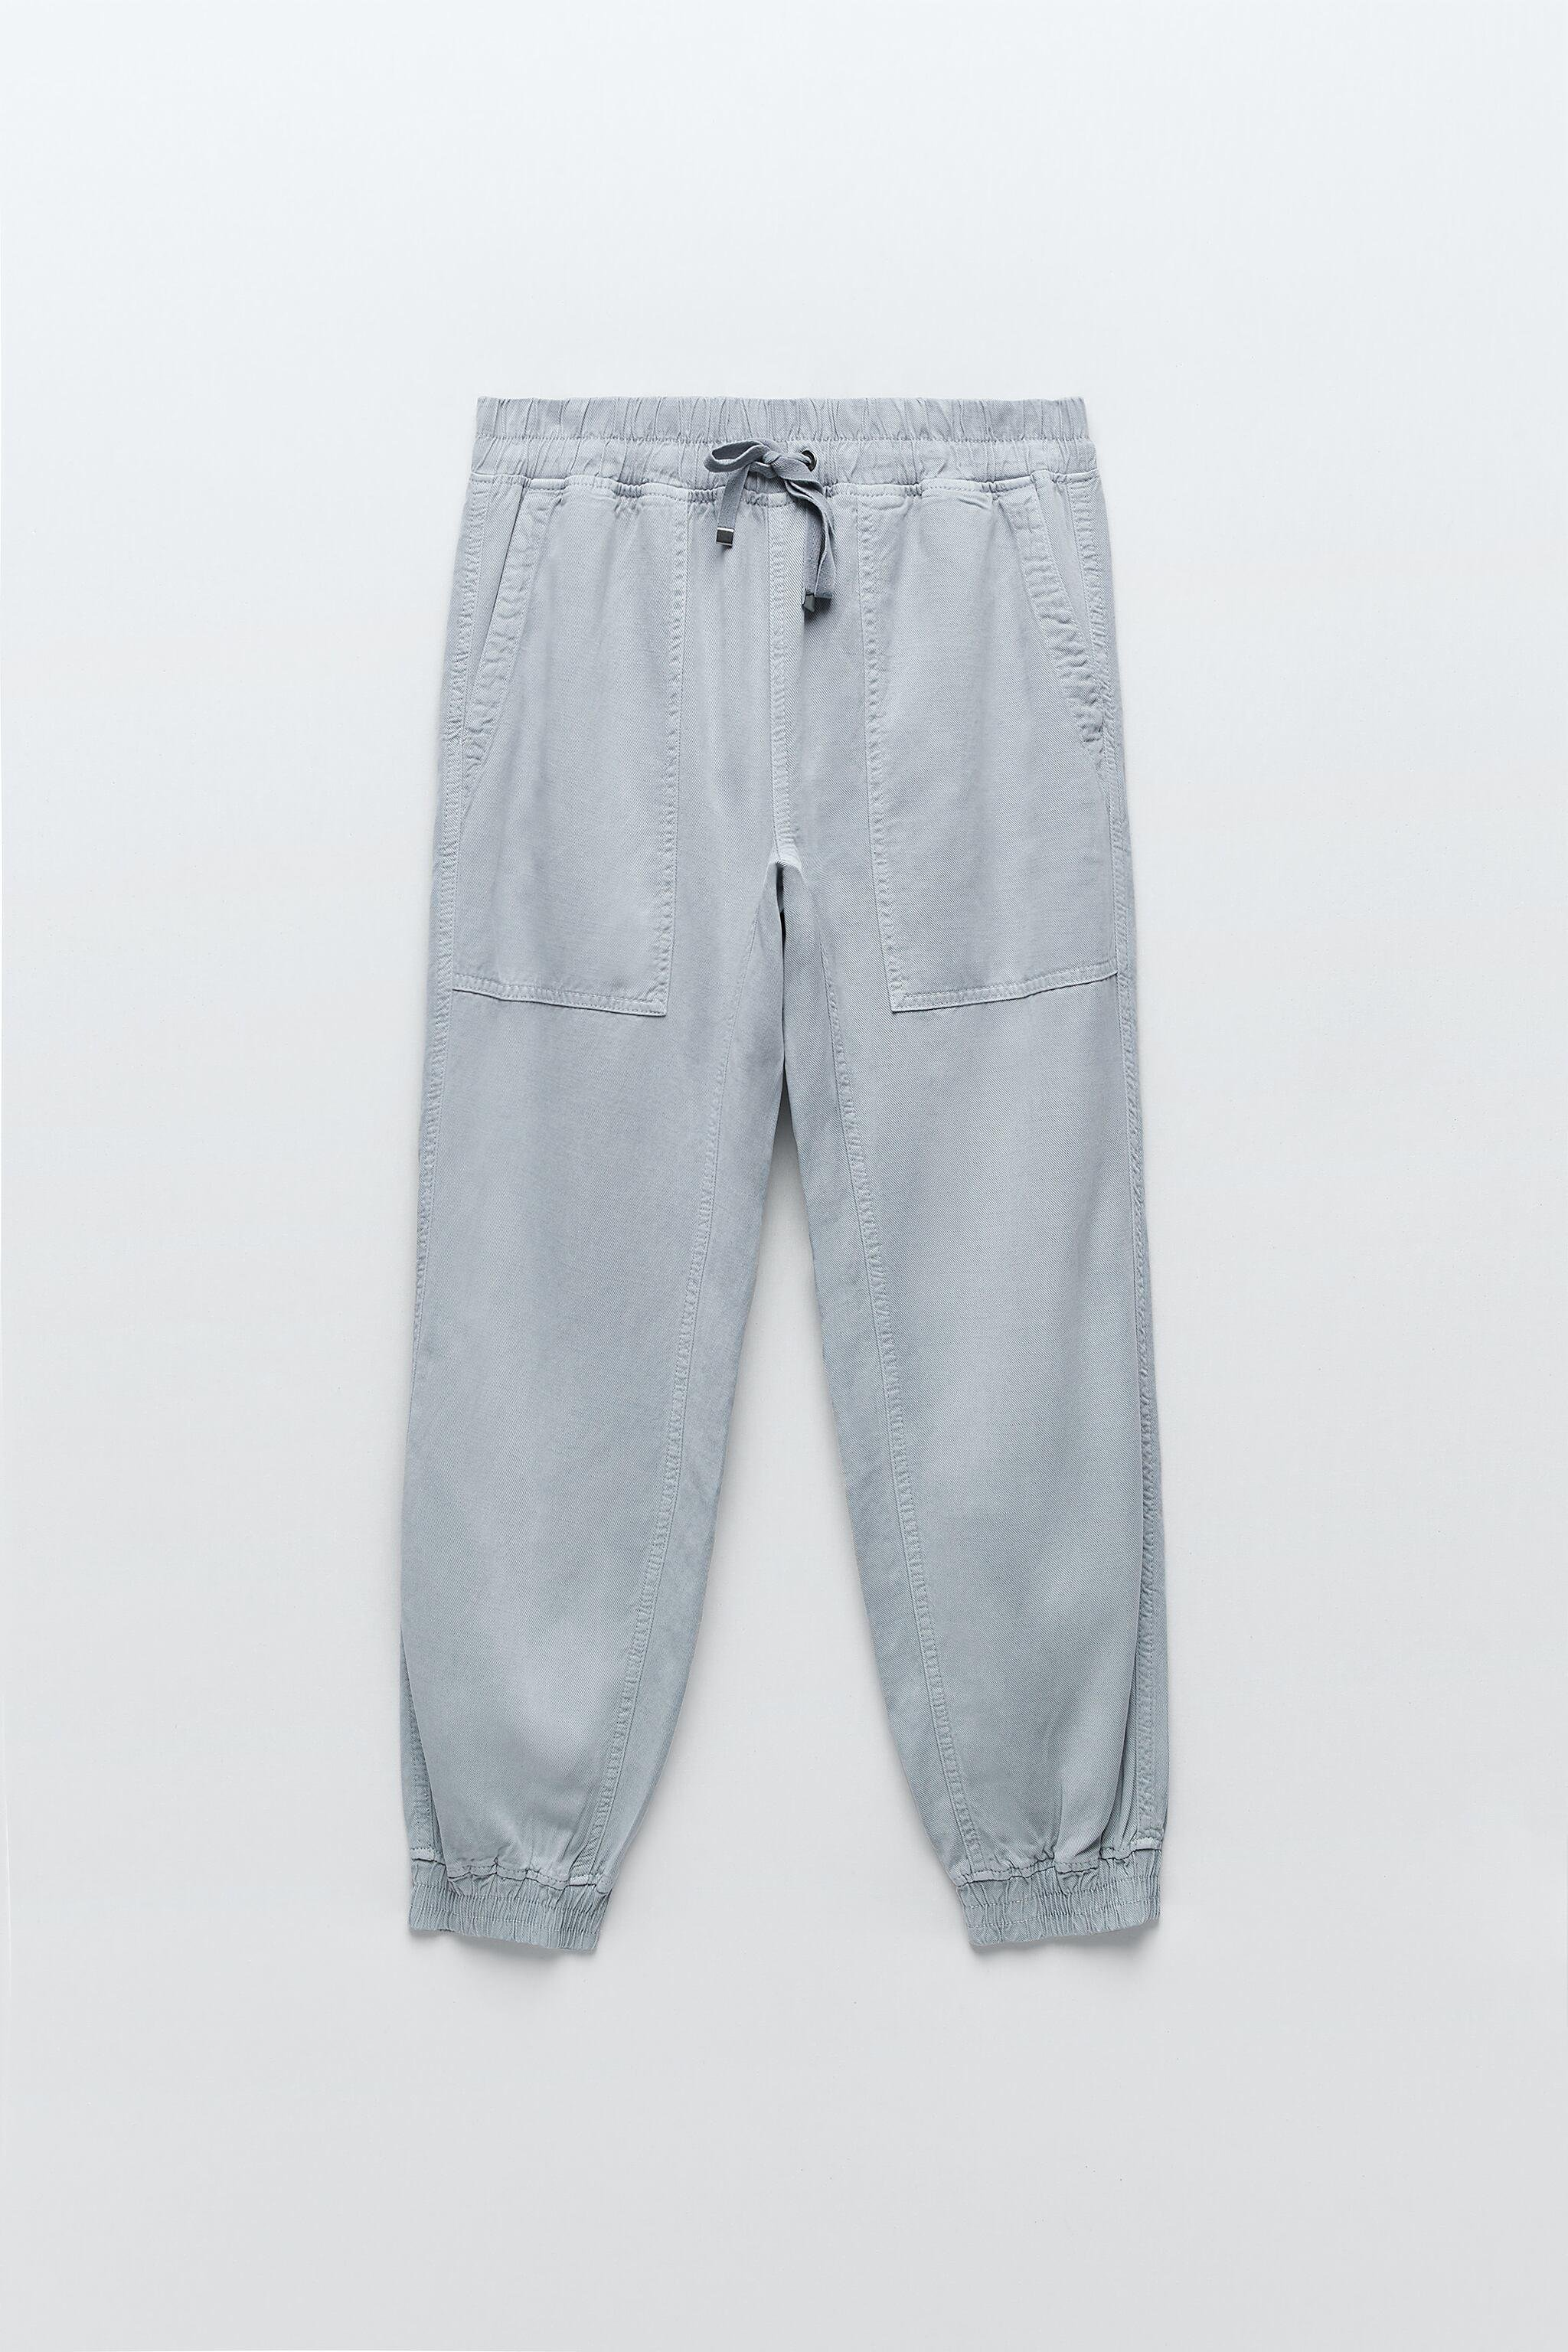 THE WEEKEND JOGGER PANTS 4